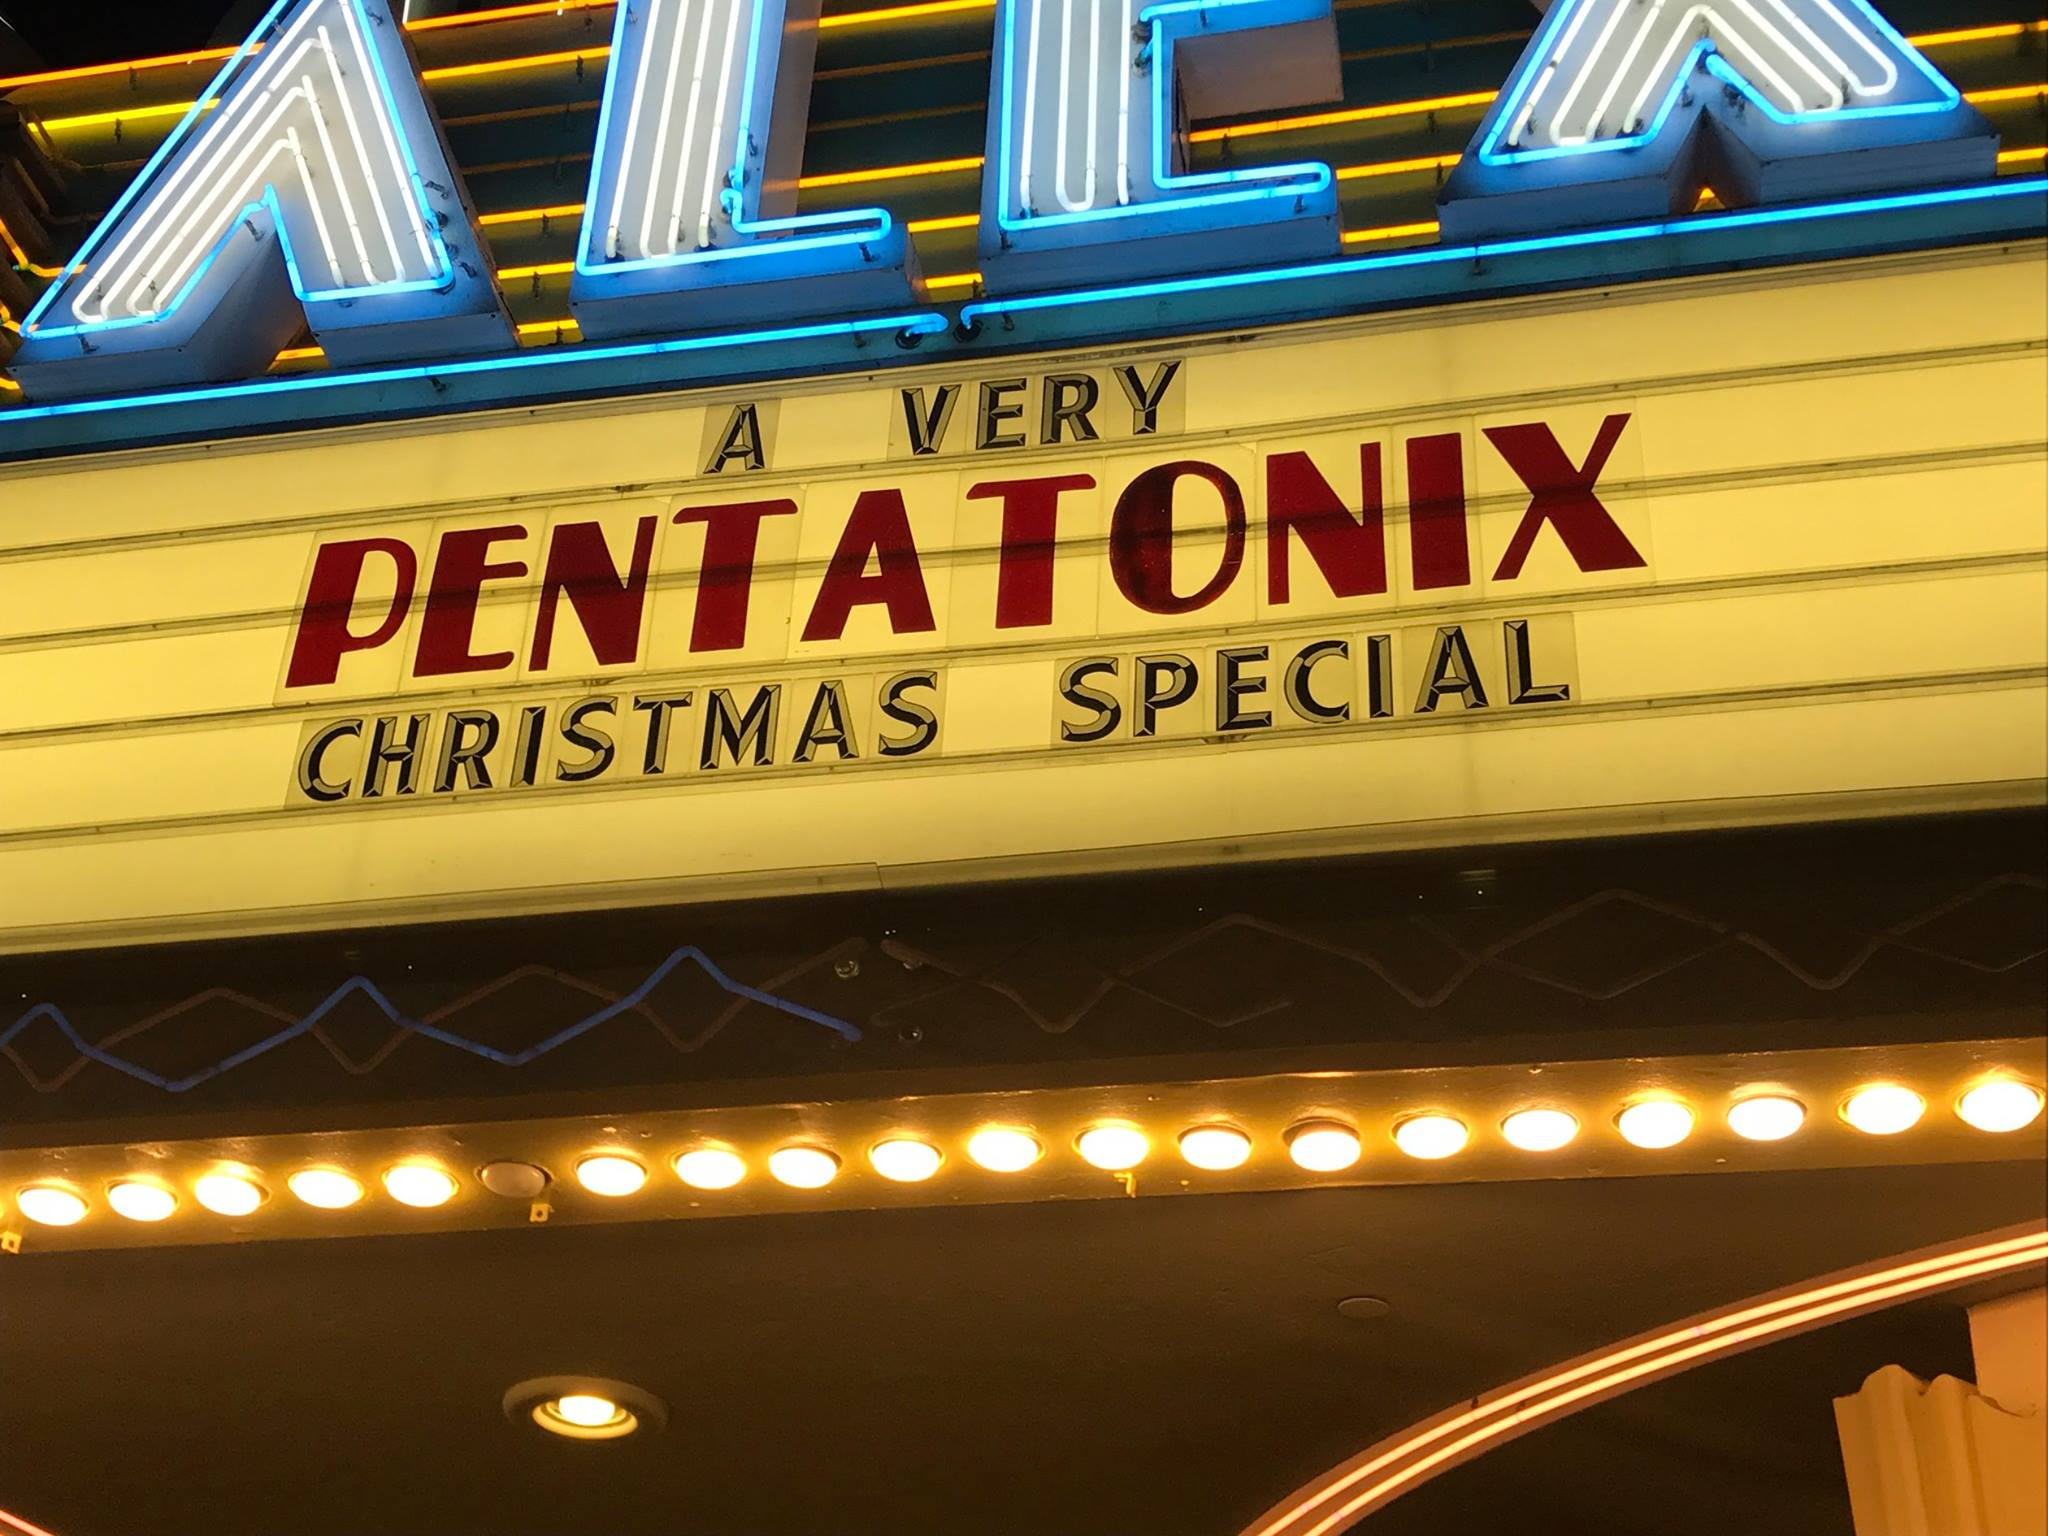 A Very Pentatonix Christmas 2020 A VERY PENTATONIX CHRISTMAS SPECIAL AIRS MONDAY NOVEMBER 27TH ON NBC!